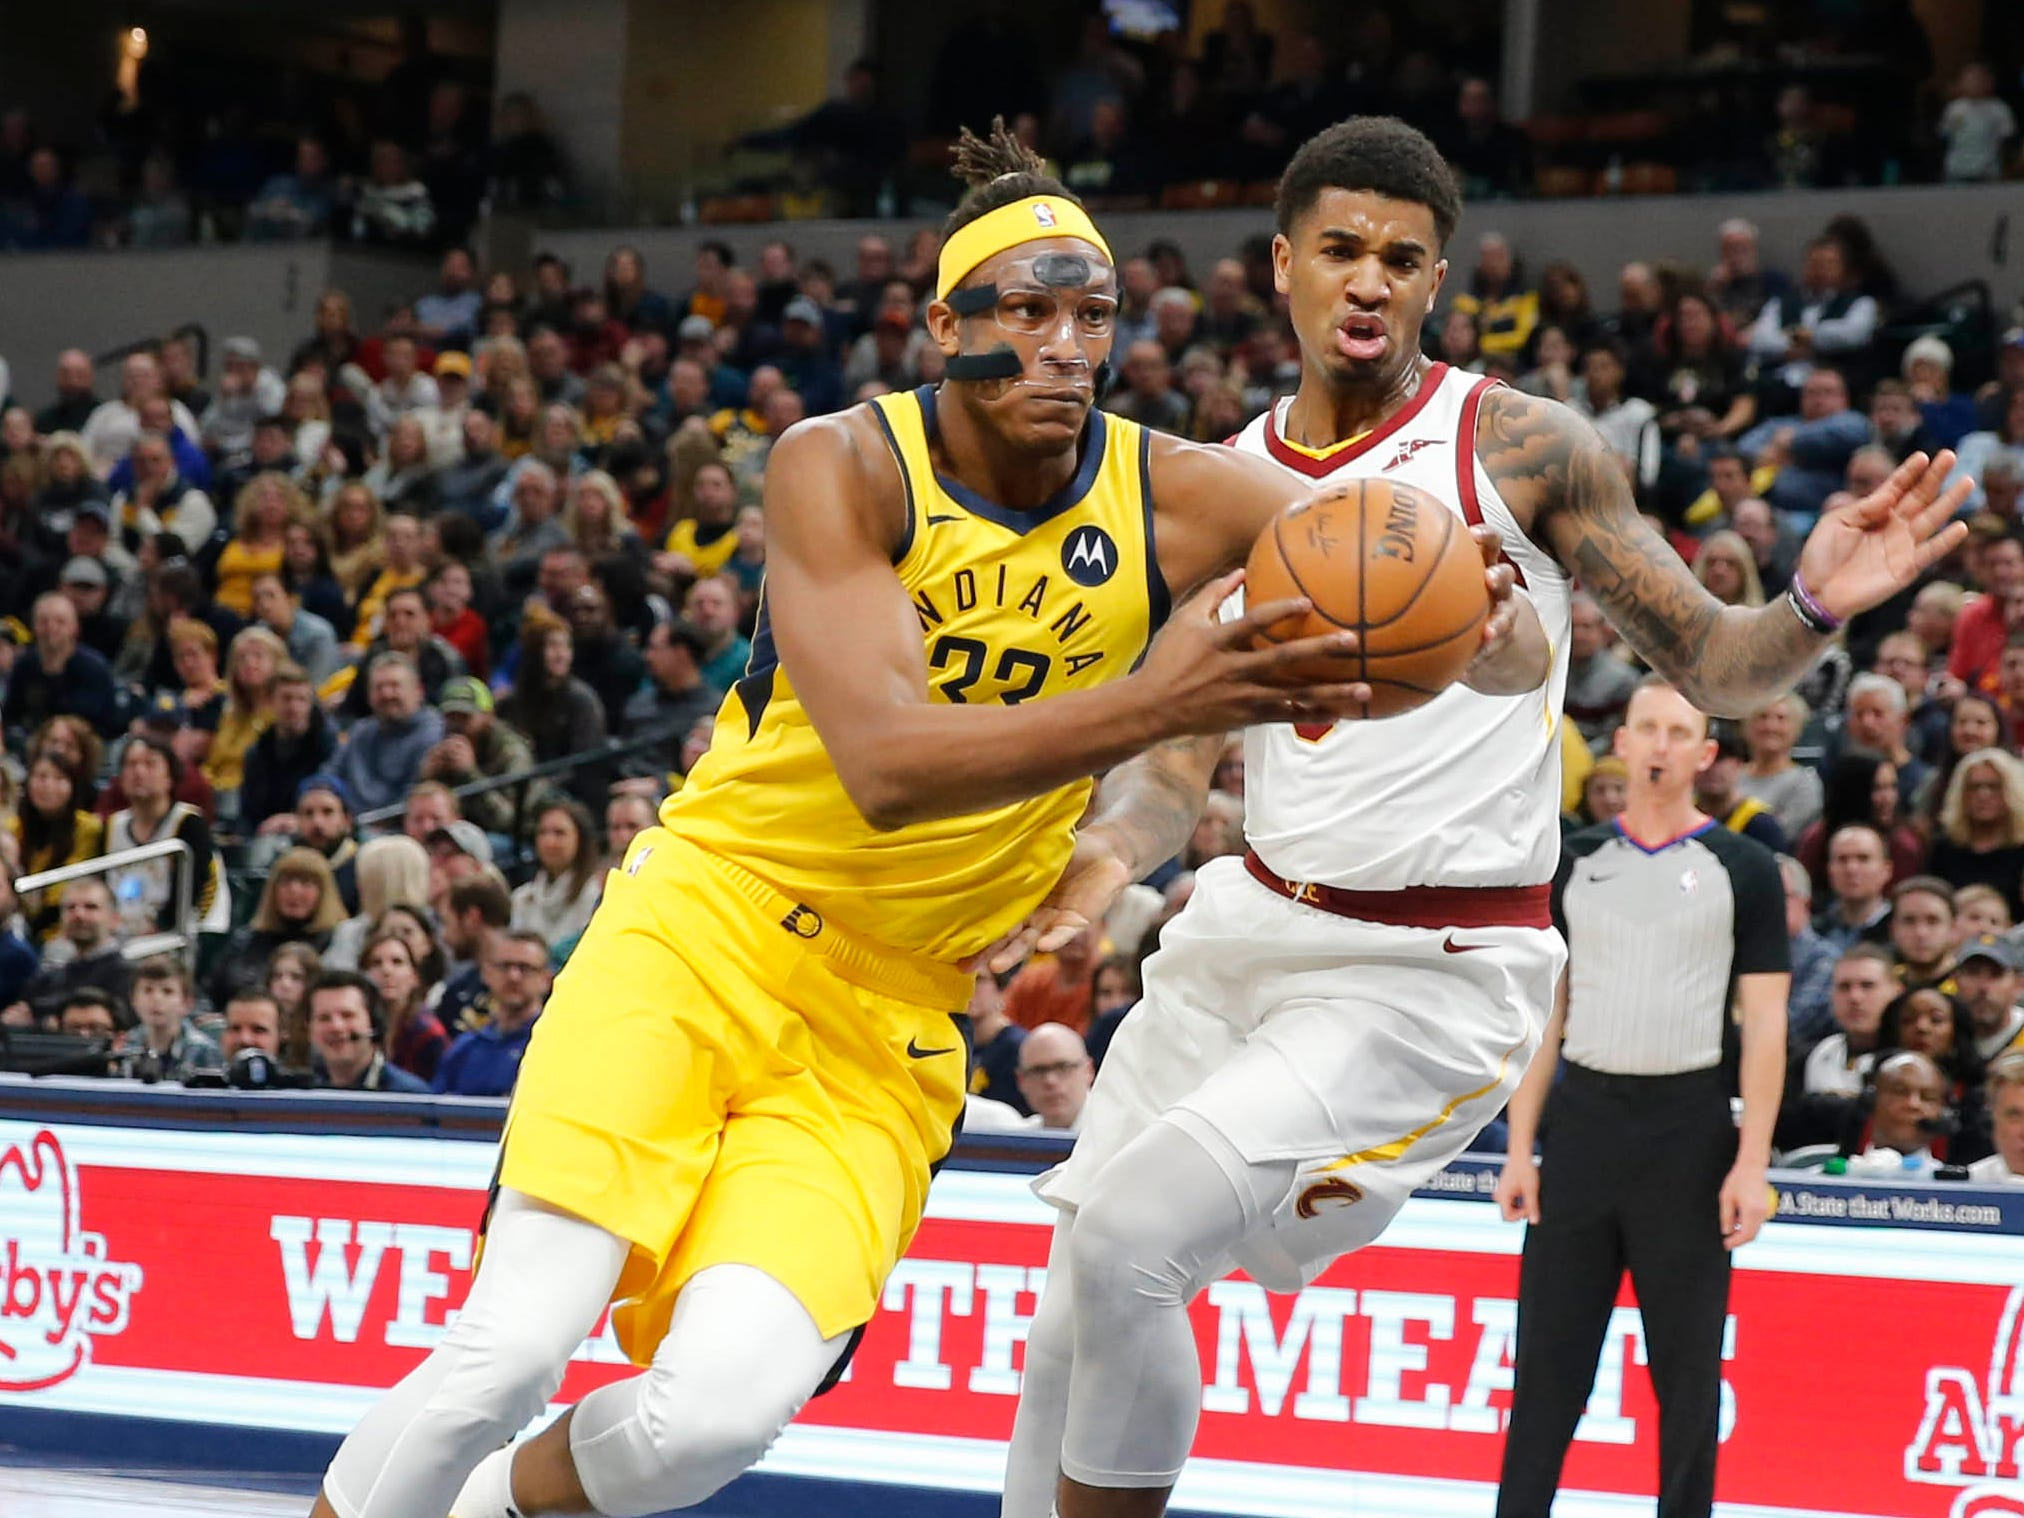 Feb 9, 2019; Indianapolis, IN, USA; Indiana Pacers center Myles Turner (33) drives to the basket against Cleveland Cavaliers center Marquese Chriss (3) during the first quarter at Bankers Life Fieldhouse. Mandatory Credit: Brian Spurlock-USA TODAY Sports